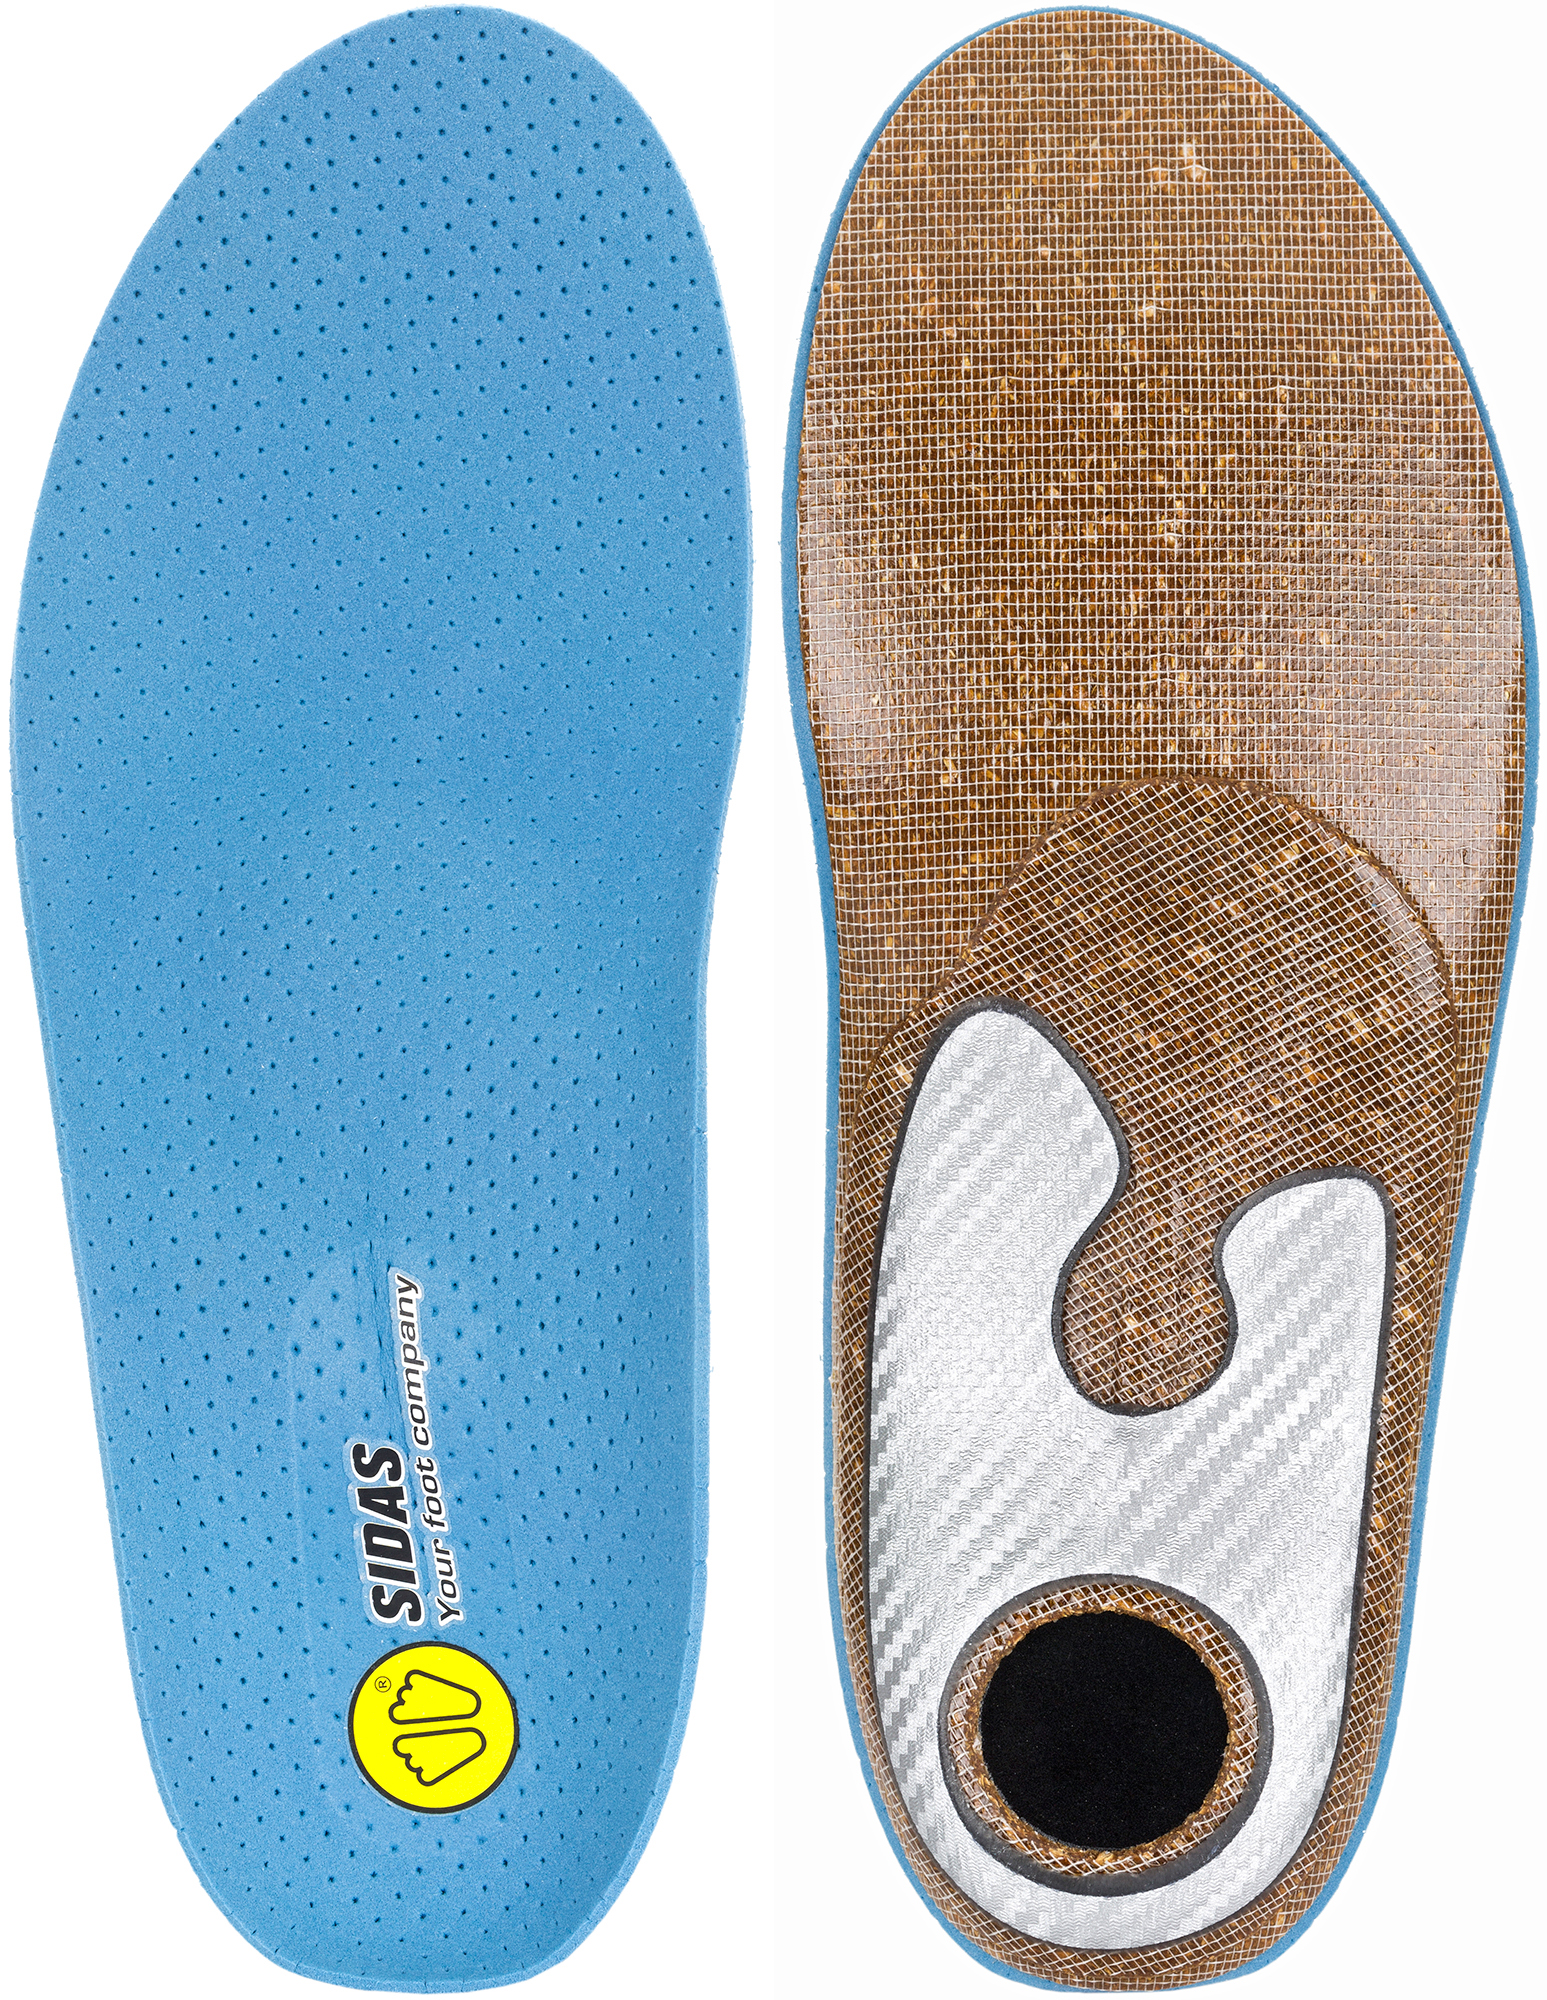 Sidas Стельки Multi + ( Flash Fit), размер 44-45